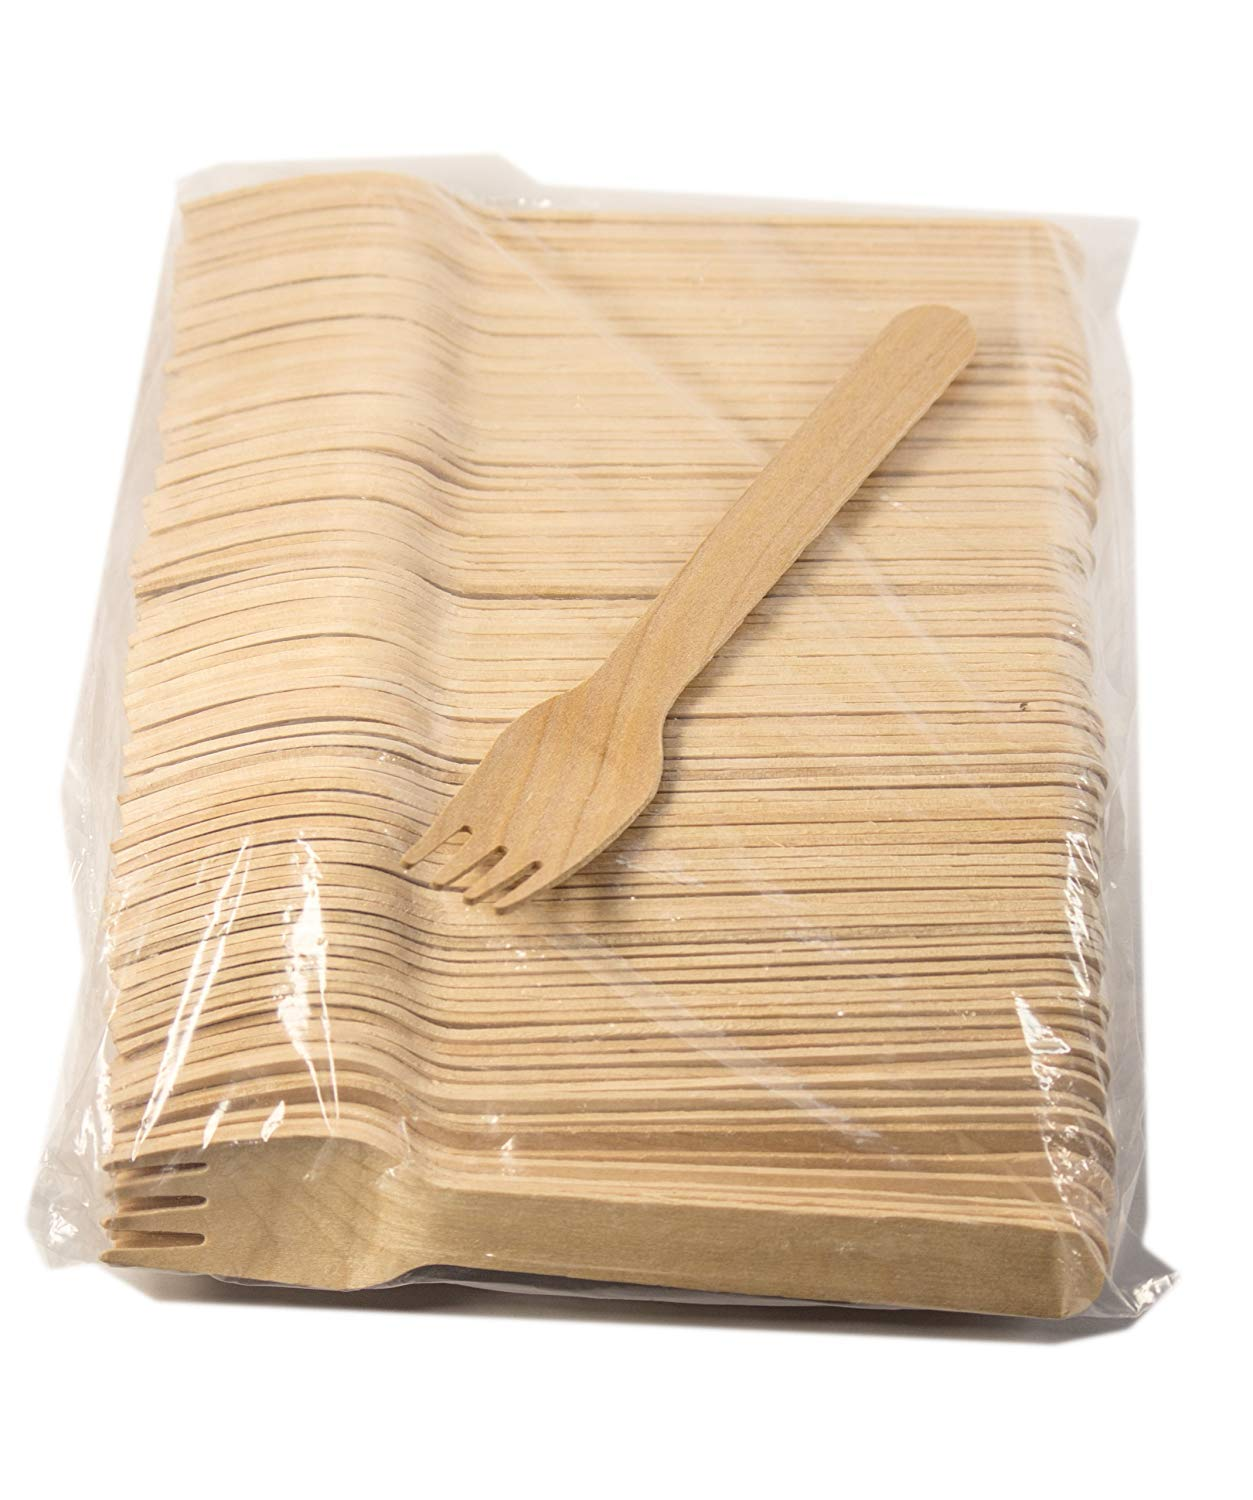 Perfect Stix-Sucre Shop Sucre Sweater Forks-18ct Holiday Wooden Cutlery Forks (Pack of 18)